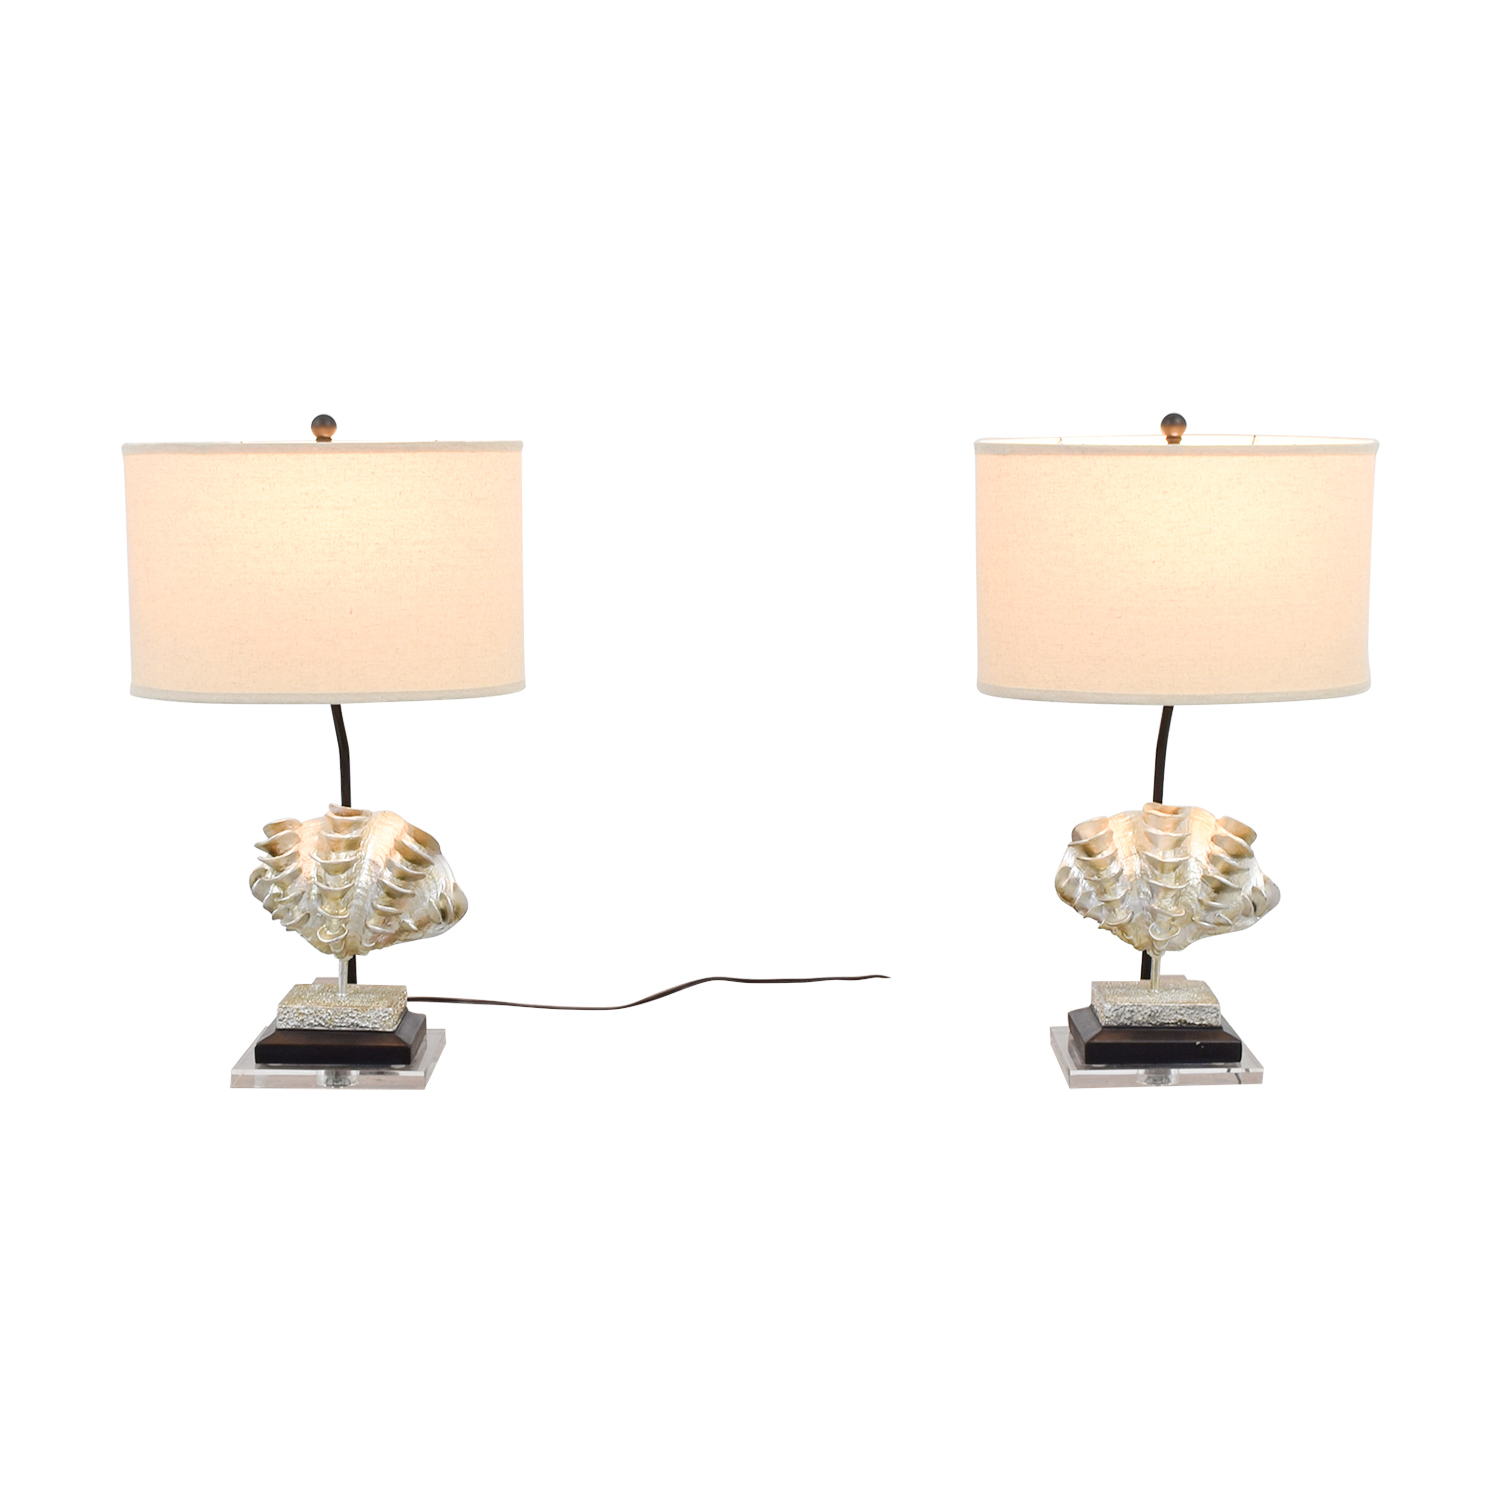 Safavieh Safavieh Shell Table Lamps for sale